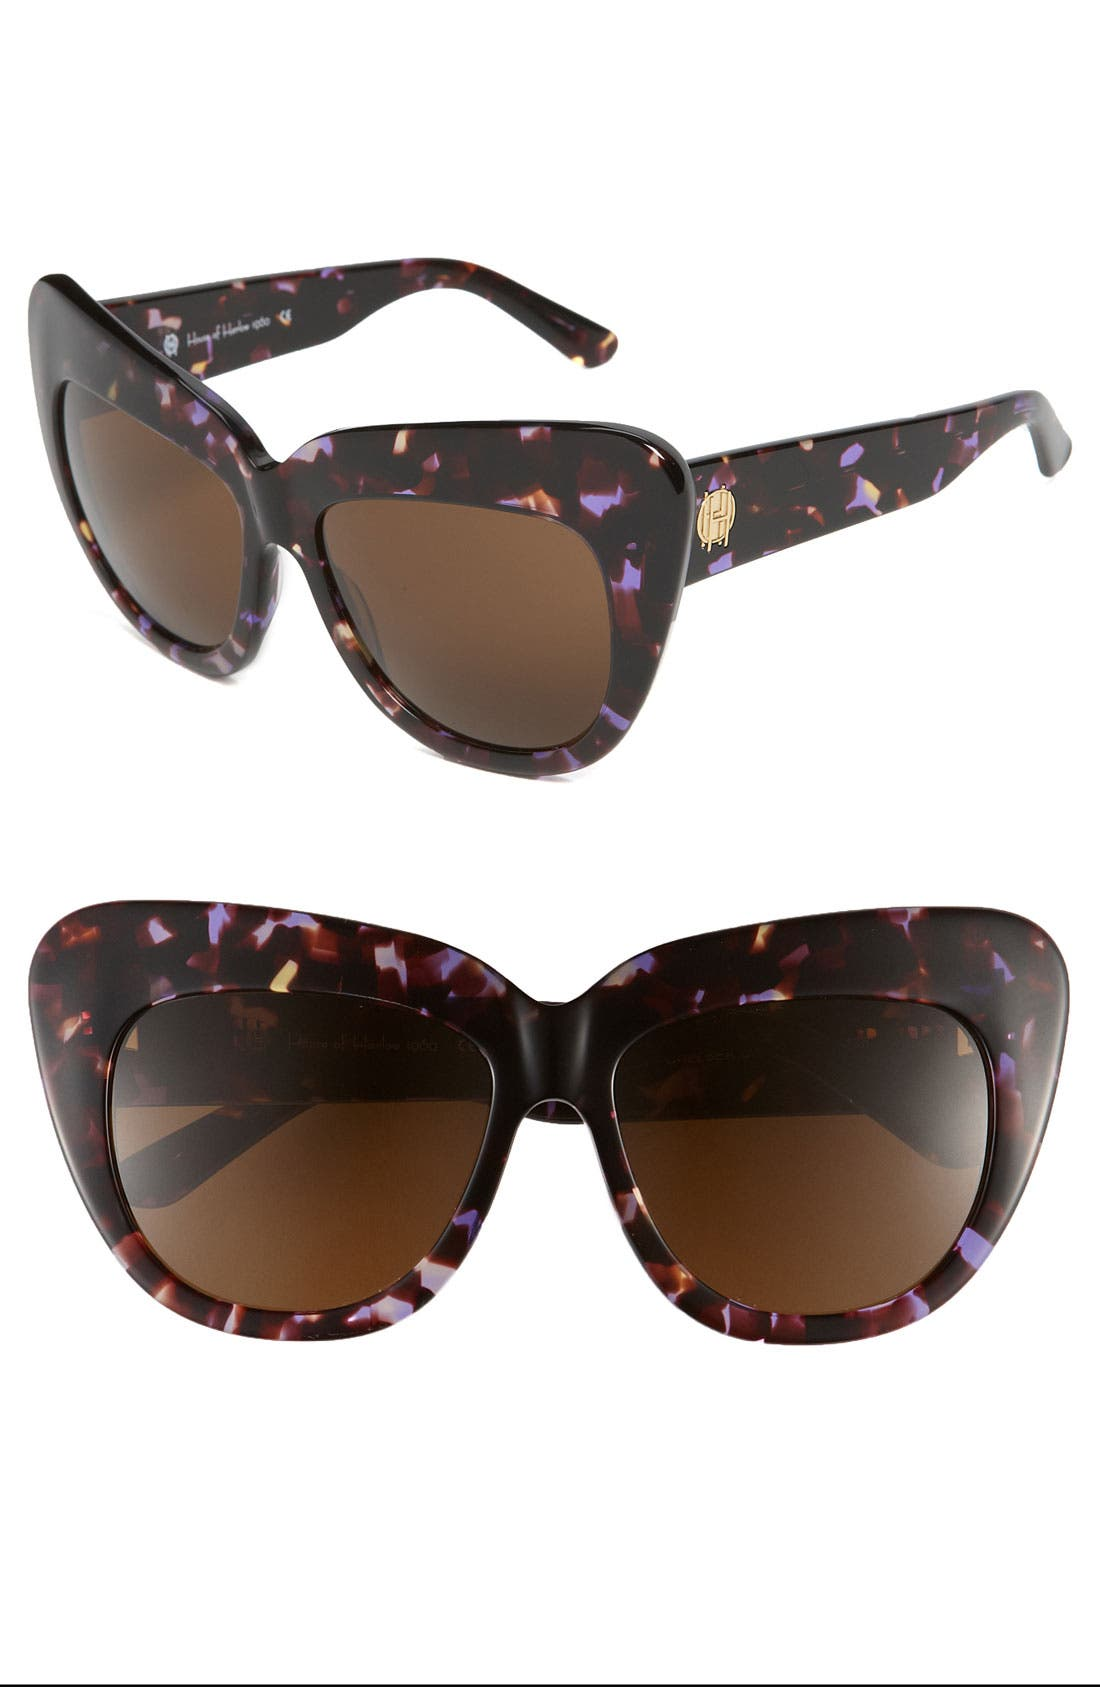 Main Image - House of Harlow 1960 'Chelsea' Cat's Eye Sunglasses